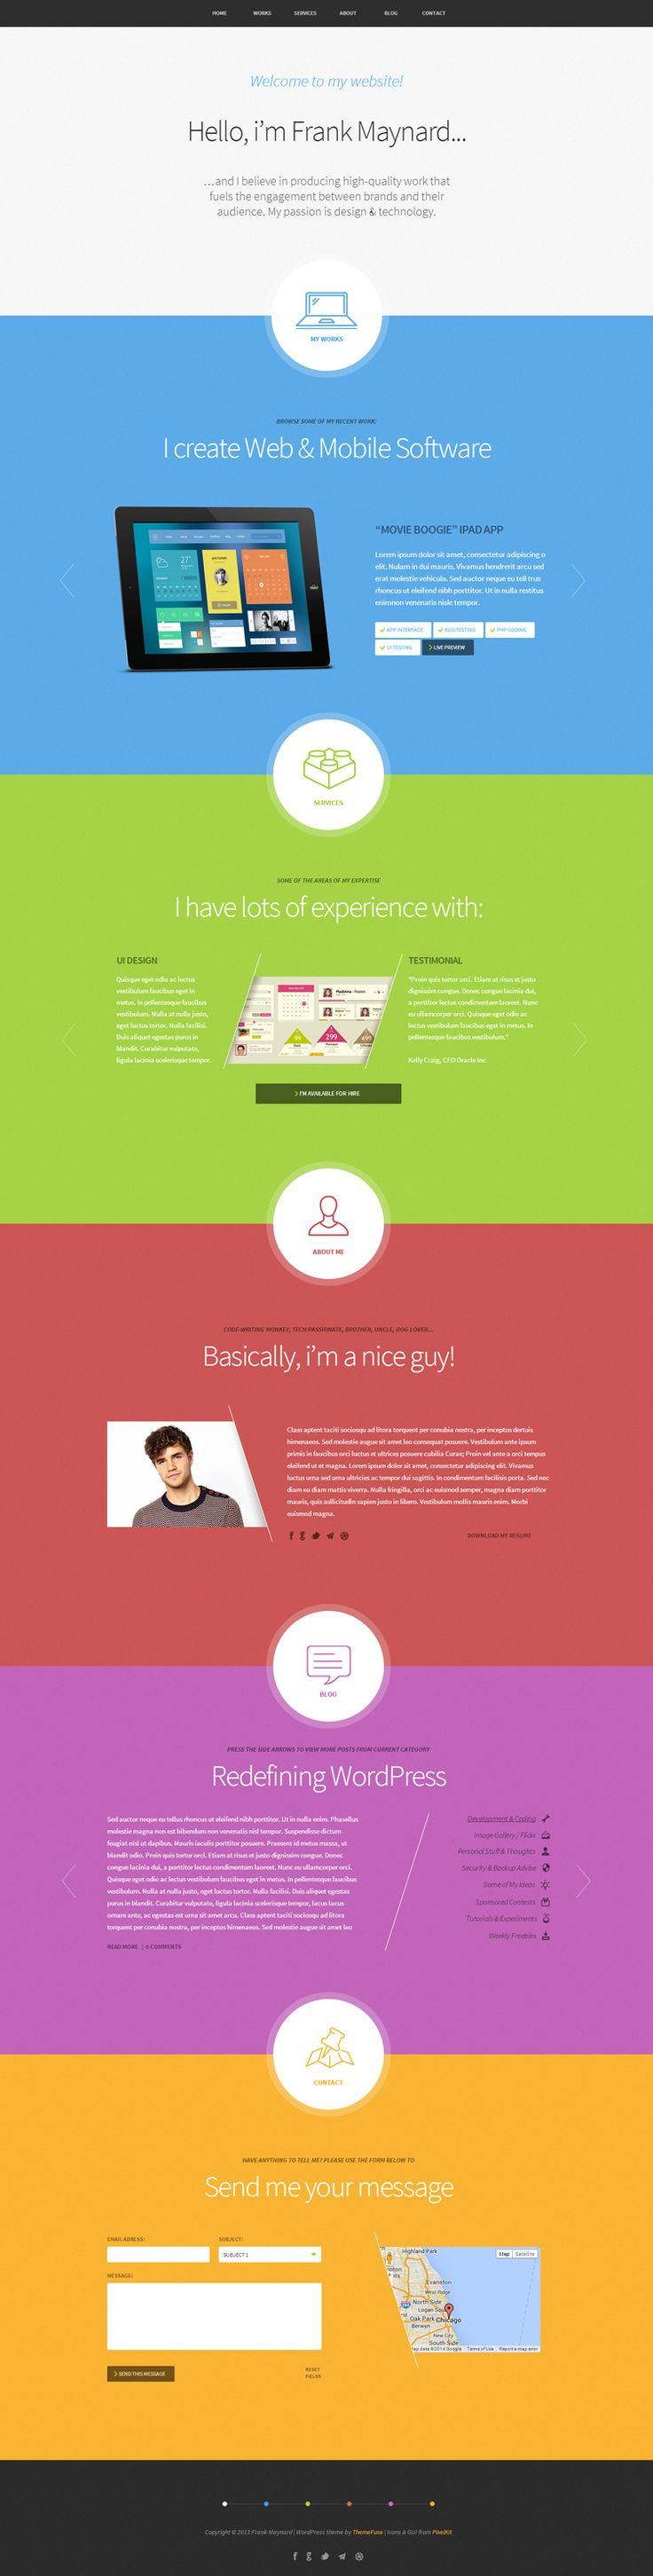 color scheme, simple, layout, one page